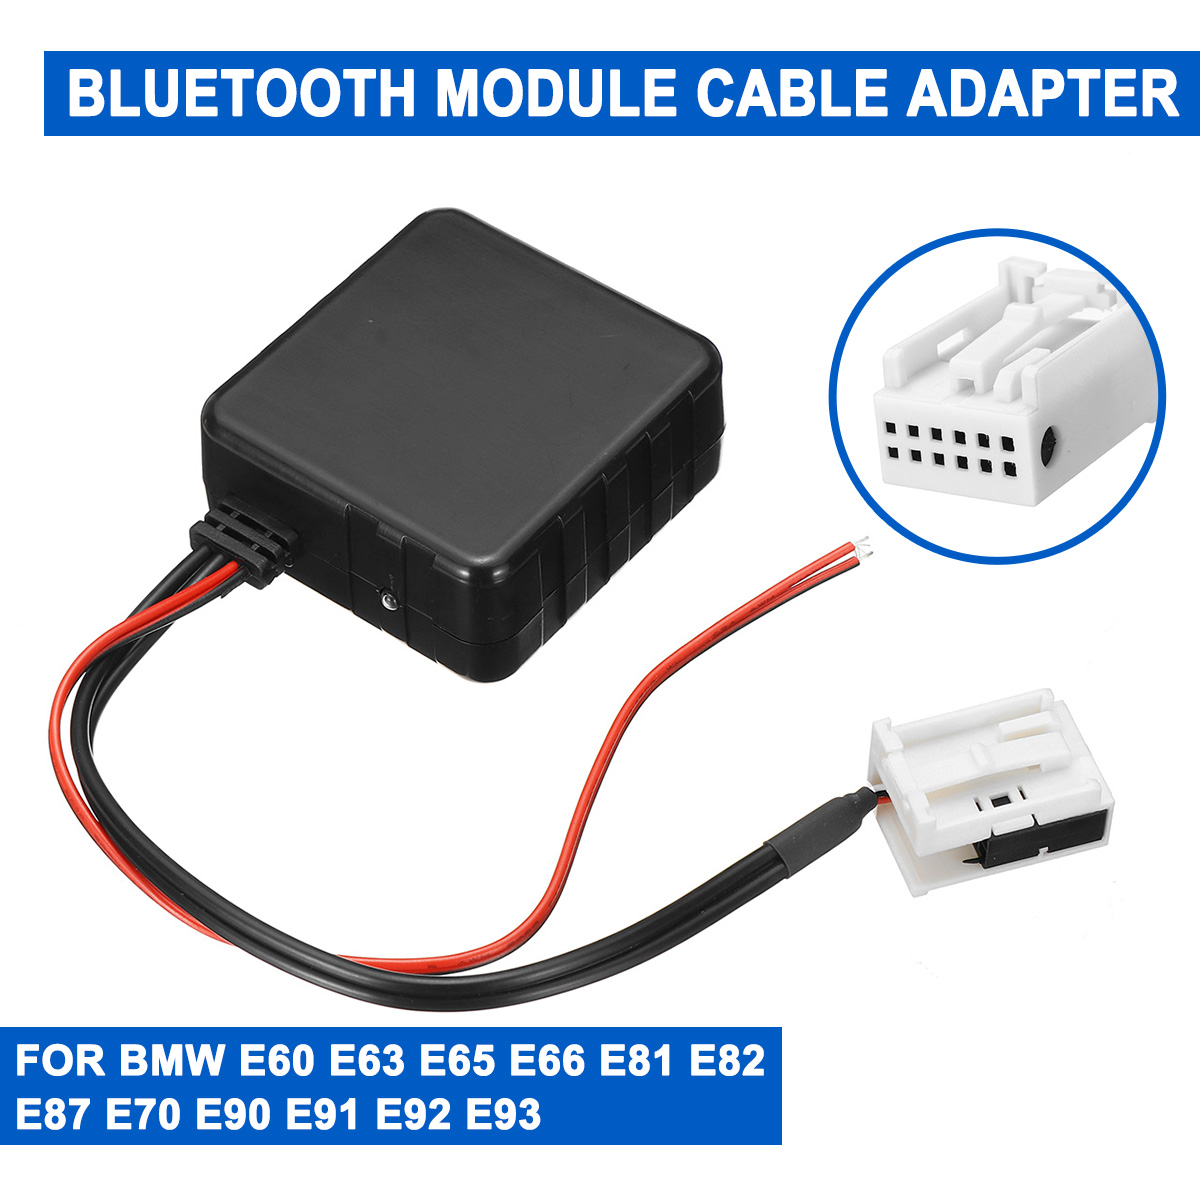 For BMW E60-E66 E70 E82 E87 E90 E92 <font><b>12V</b></font> Car <font><b>bluetooth</b></font> 5.0 Module <font><b>AUX</b></font> Cable <font><b>Adapter</b></font> Audio Radio Stereo <font><b>AUX</b></font>-IN Plastic image